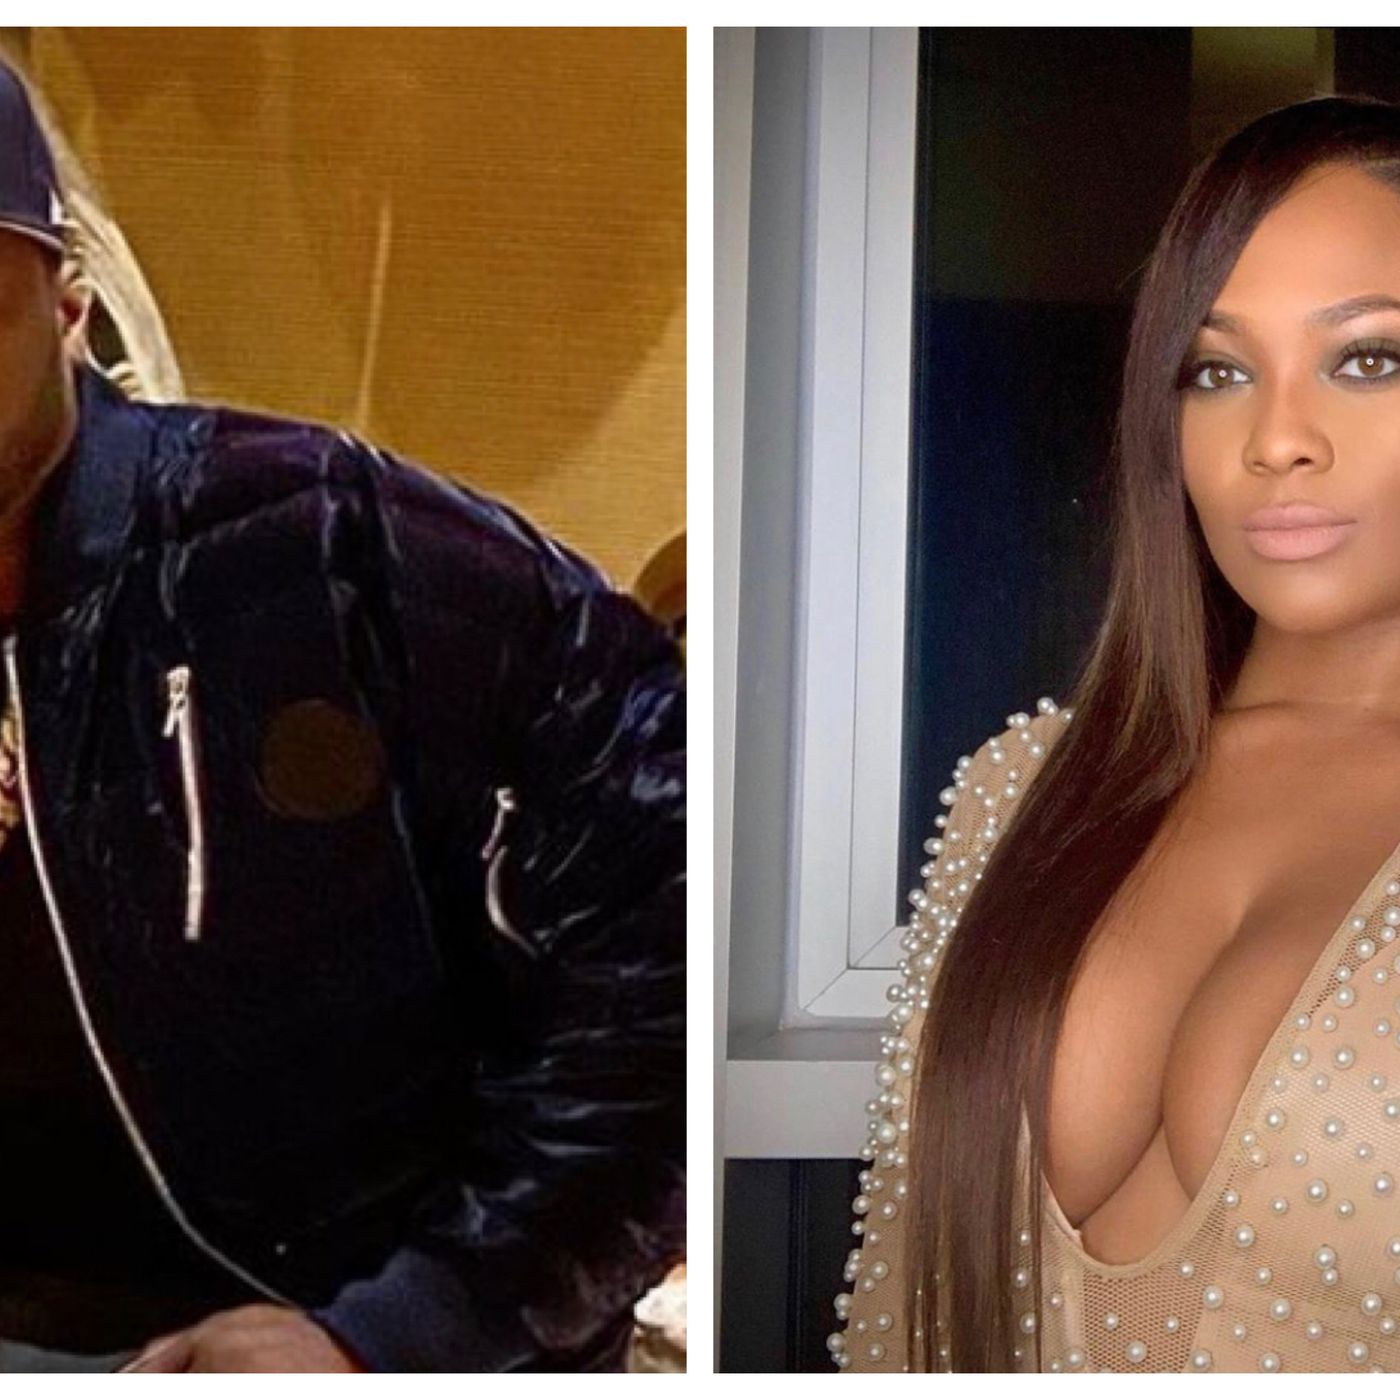 50 Cent Video Porno 50 cent asks a judge to force teairra mari to pay up $30,000